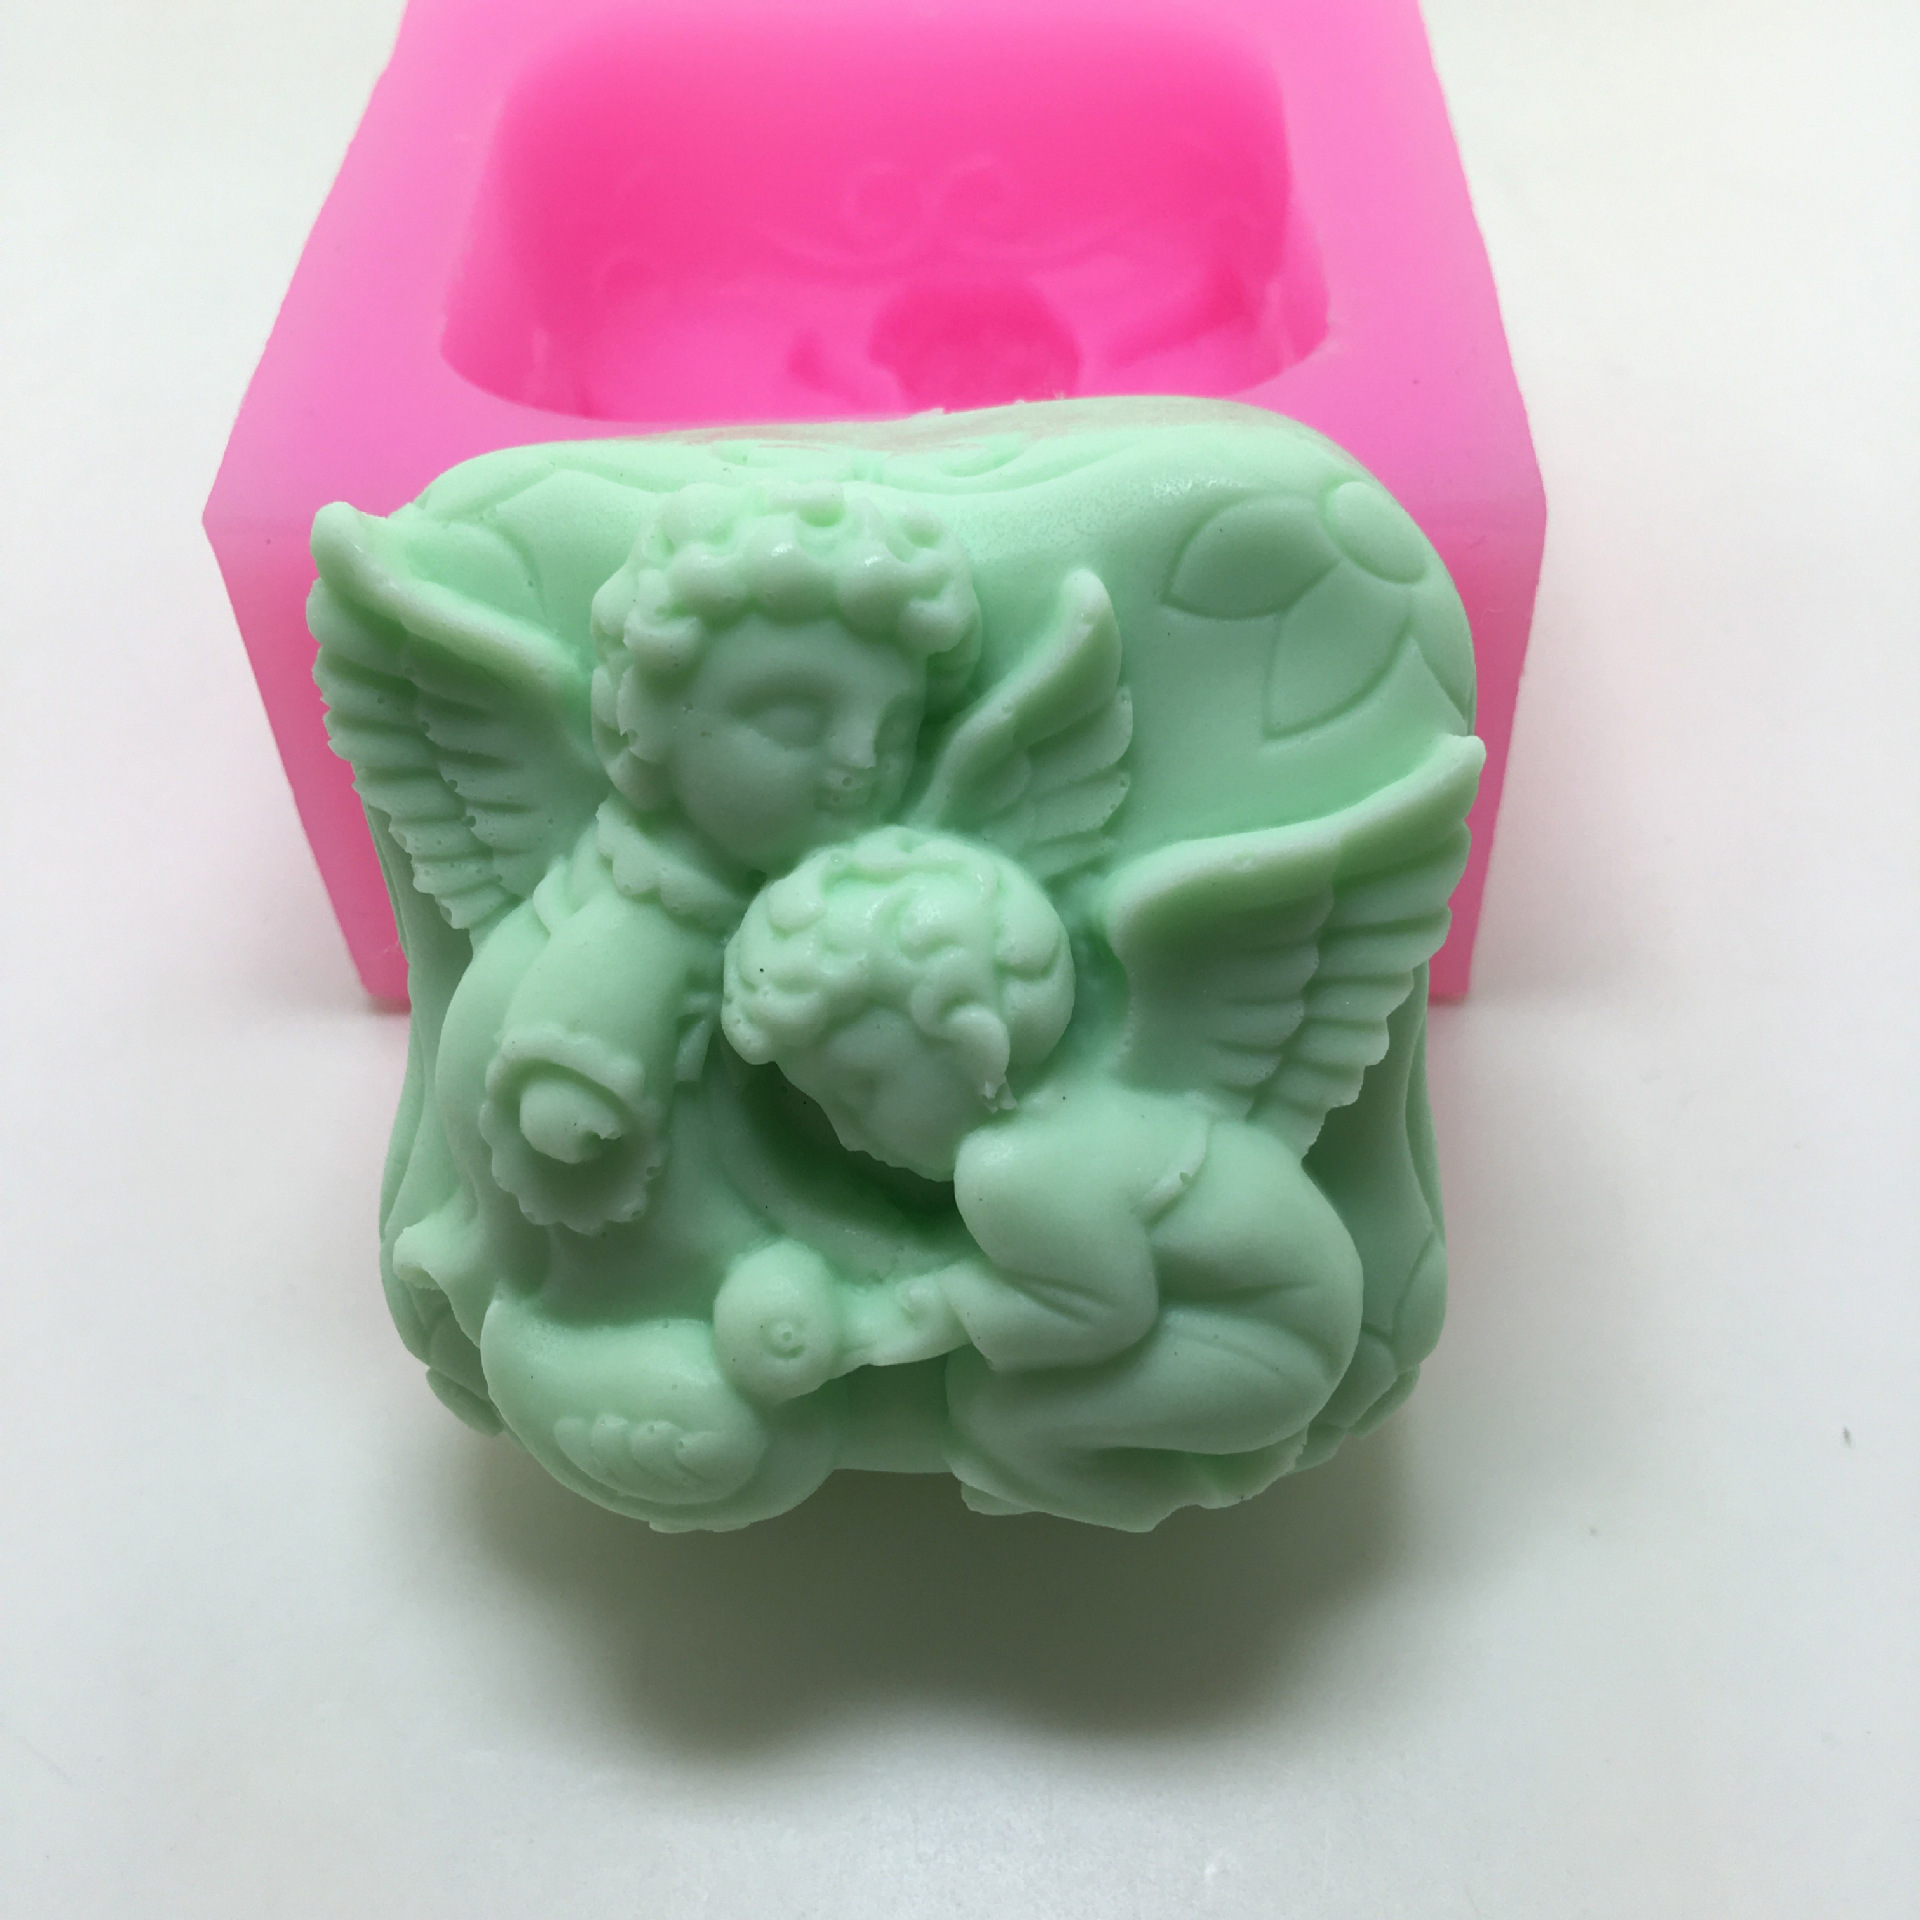 abstract angel silicone mold cake decoration manual soap making